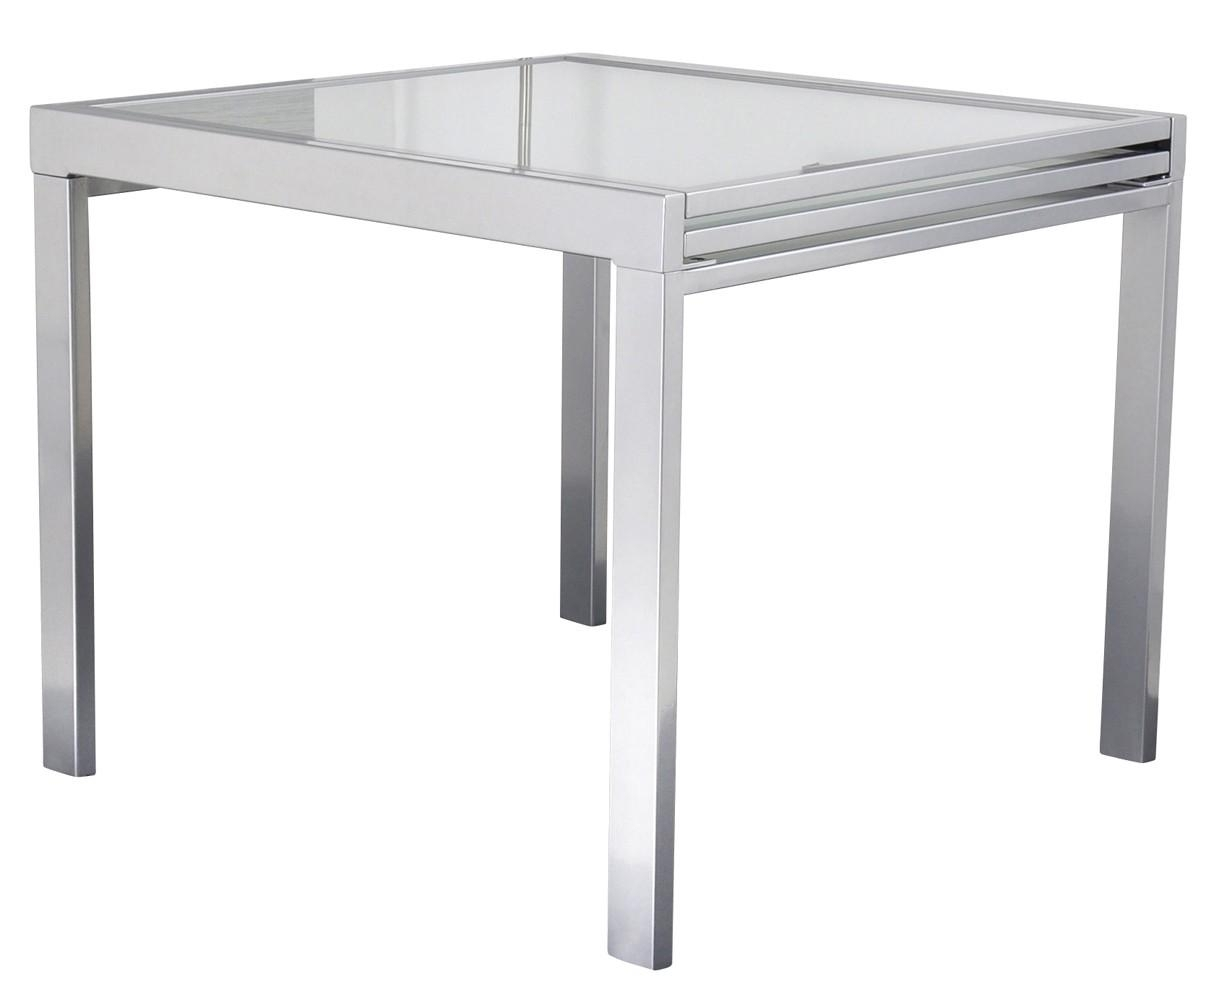 Les tendances table carr e extensible grise for Table blanche extensible